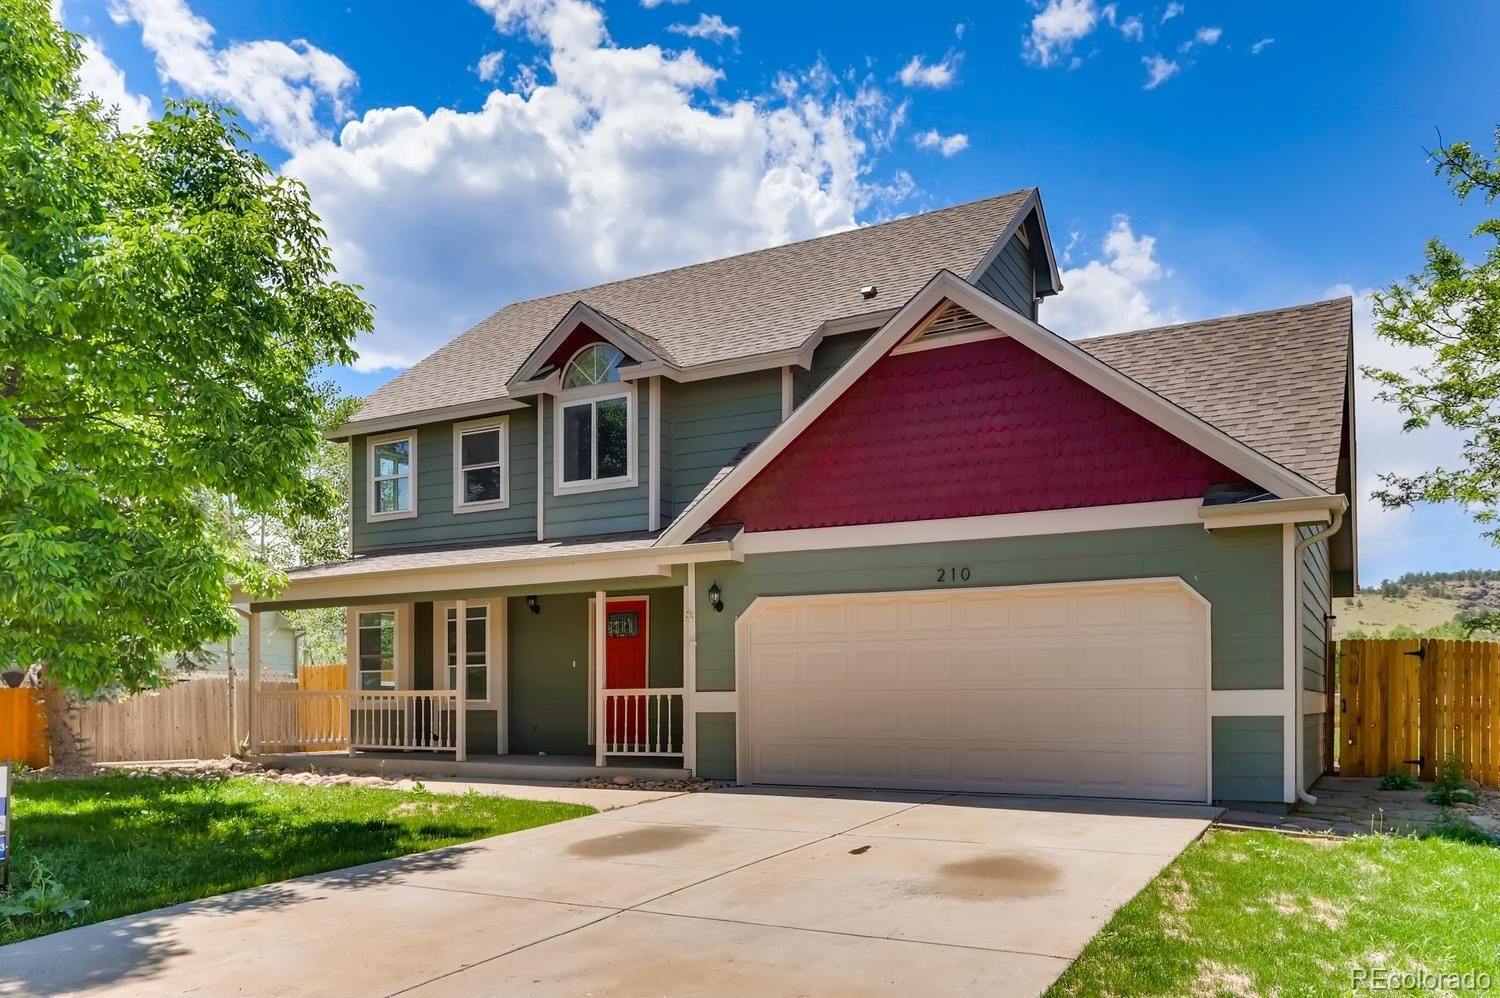 210 Welch Drive, Lyons, CO 80540 - #: 8771787